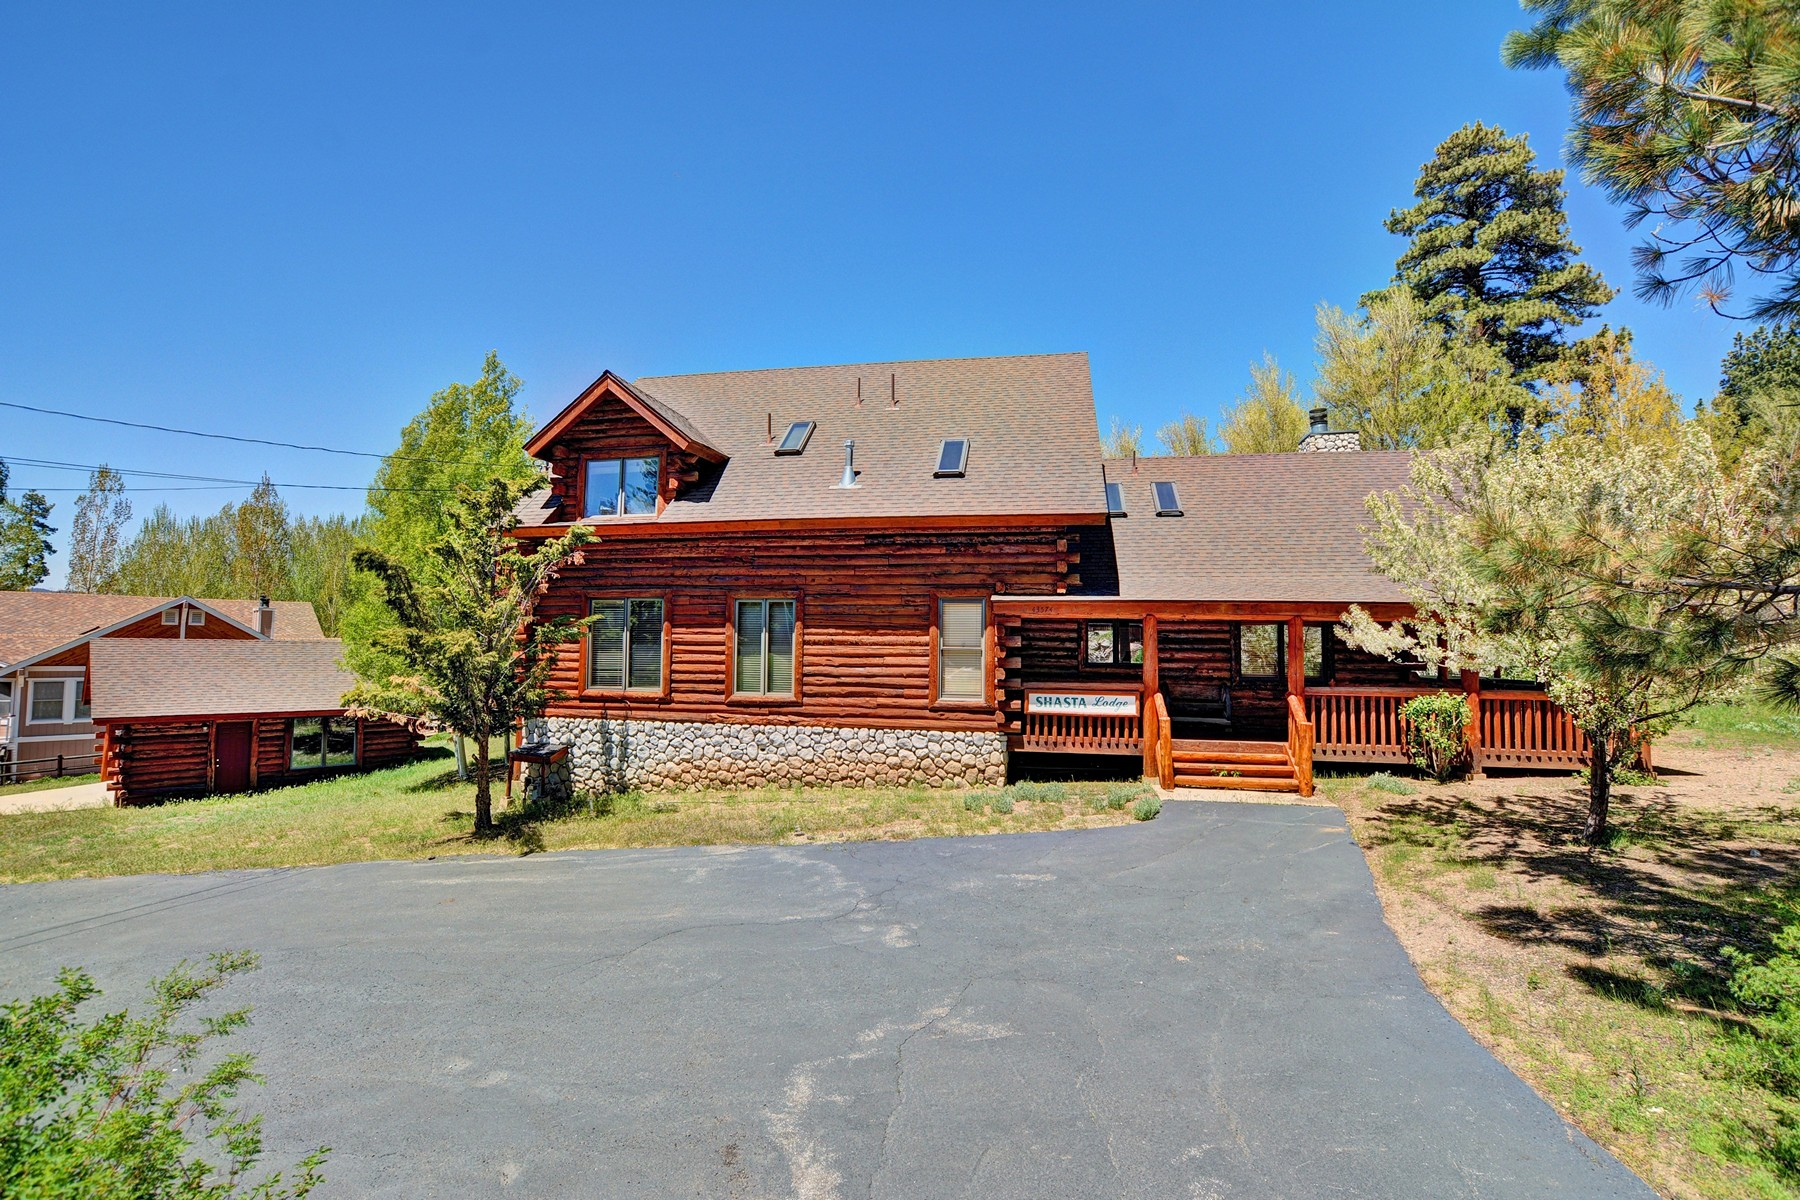 Single Family Home for Sale at Big Bear 43574 Shasta Road Big Bear Lake, California 92315 United States